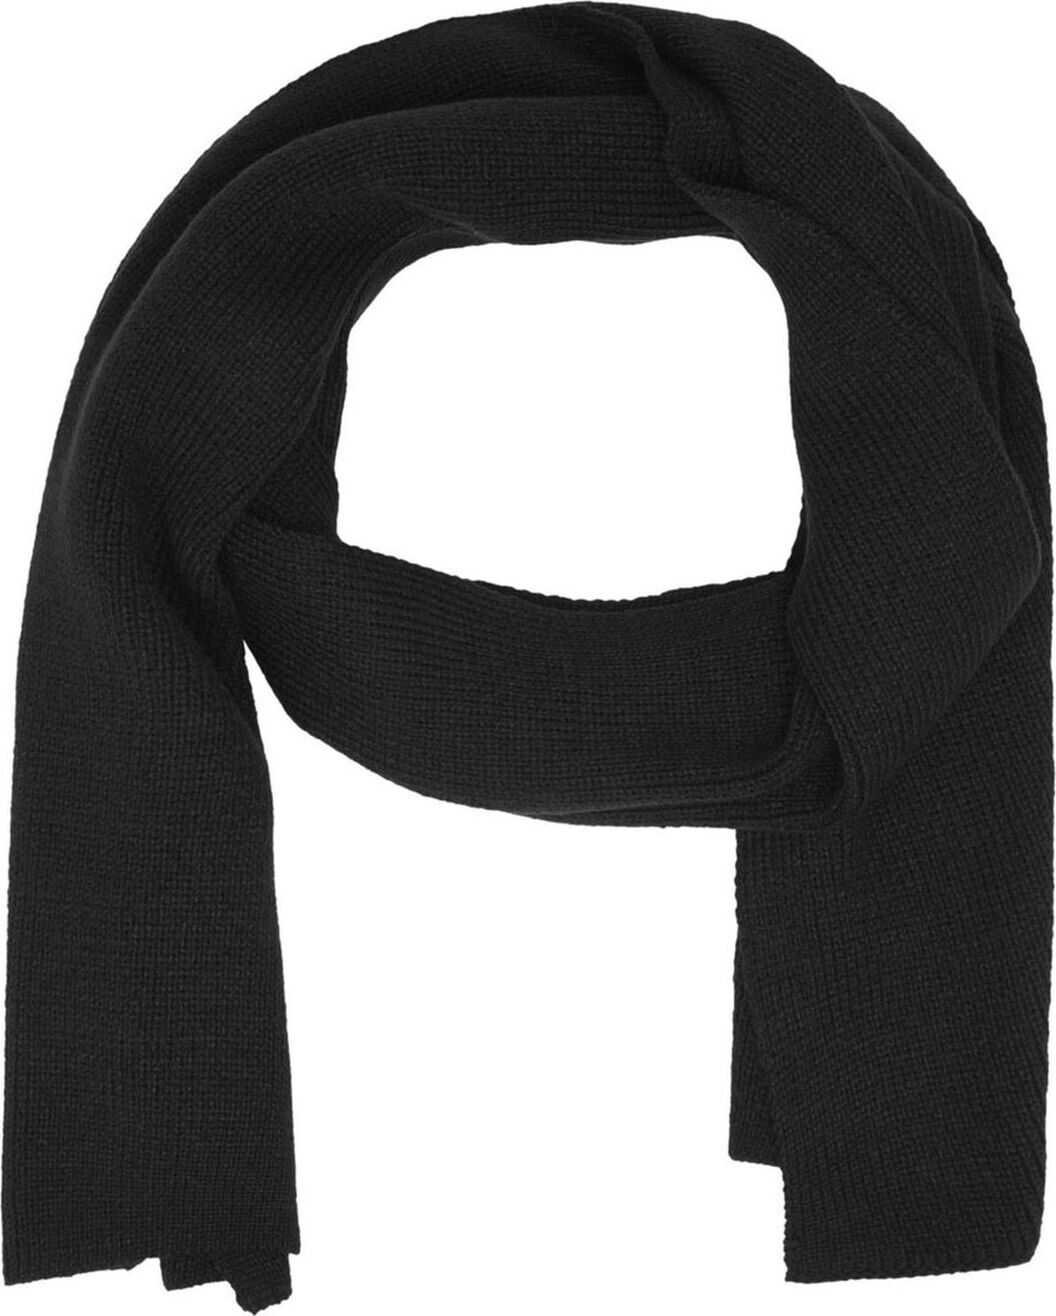 JACK & JONES 12098582Black Acrylic Scarf BLACK